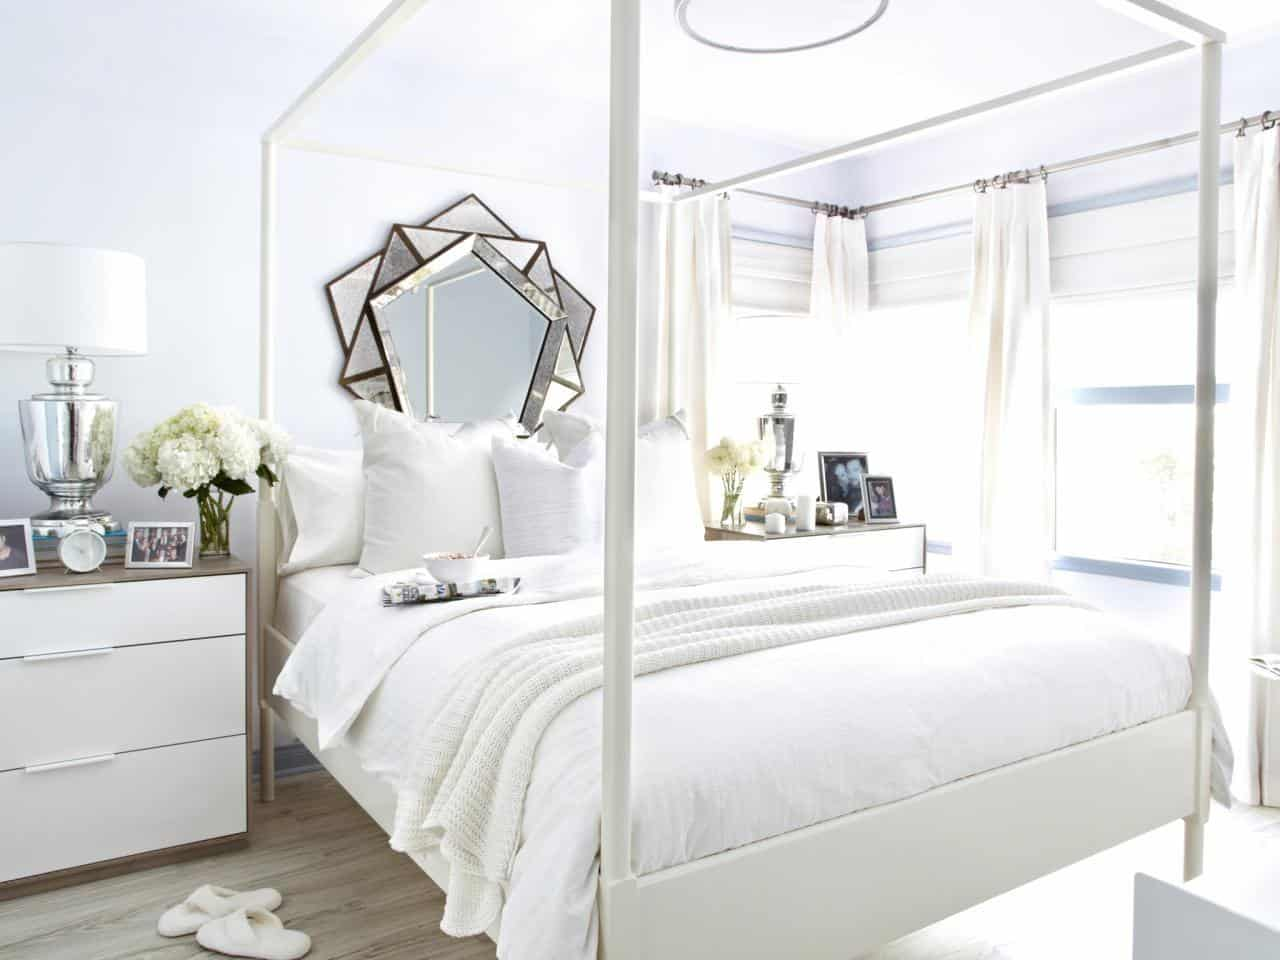 Have Your Guest Feel Right at Home with These Guest Room Design Concepts